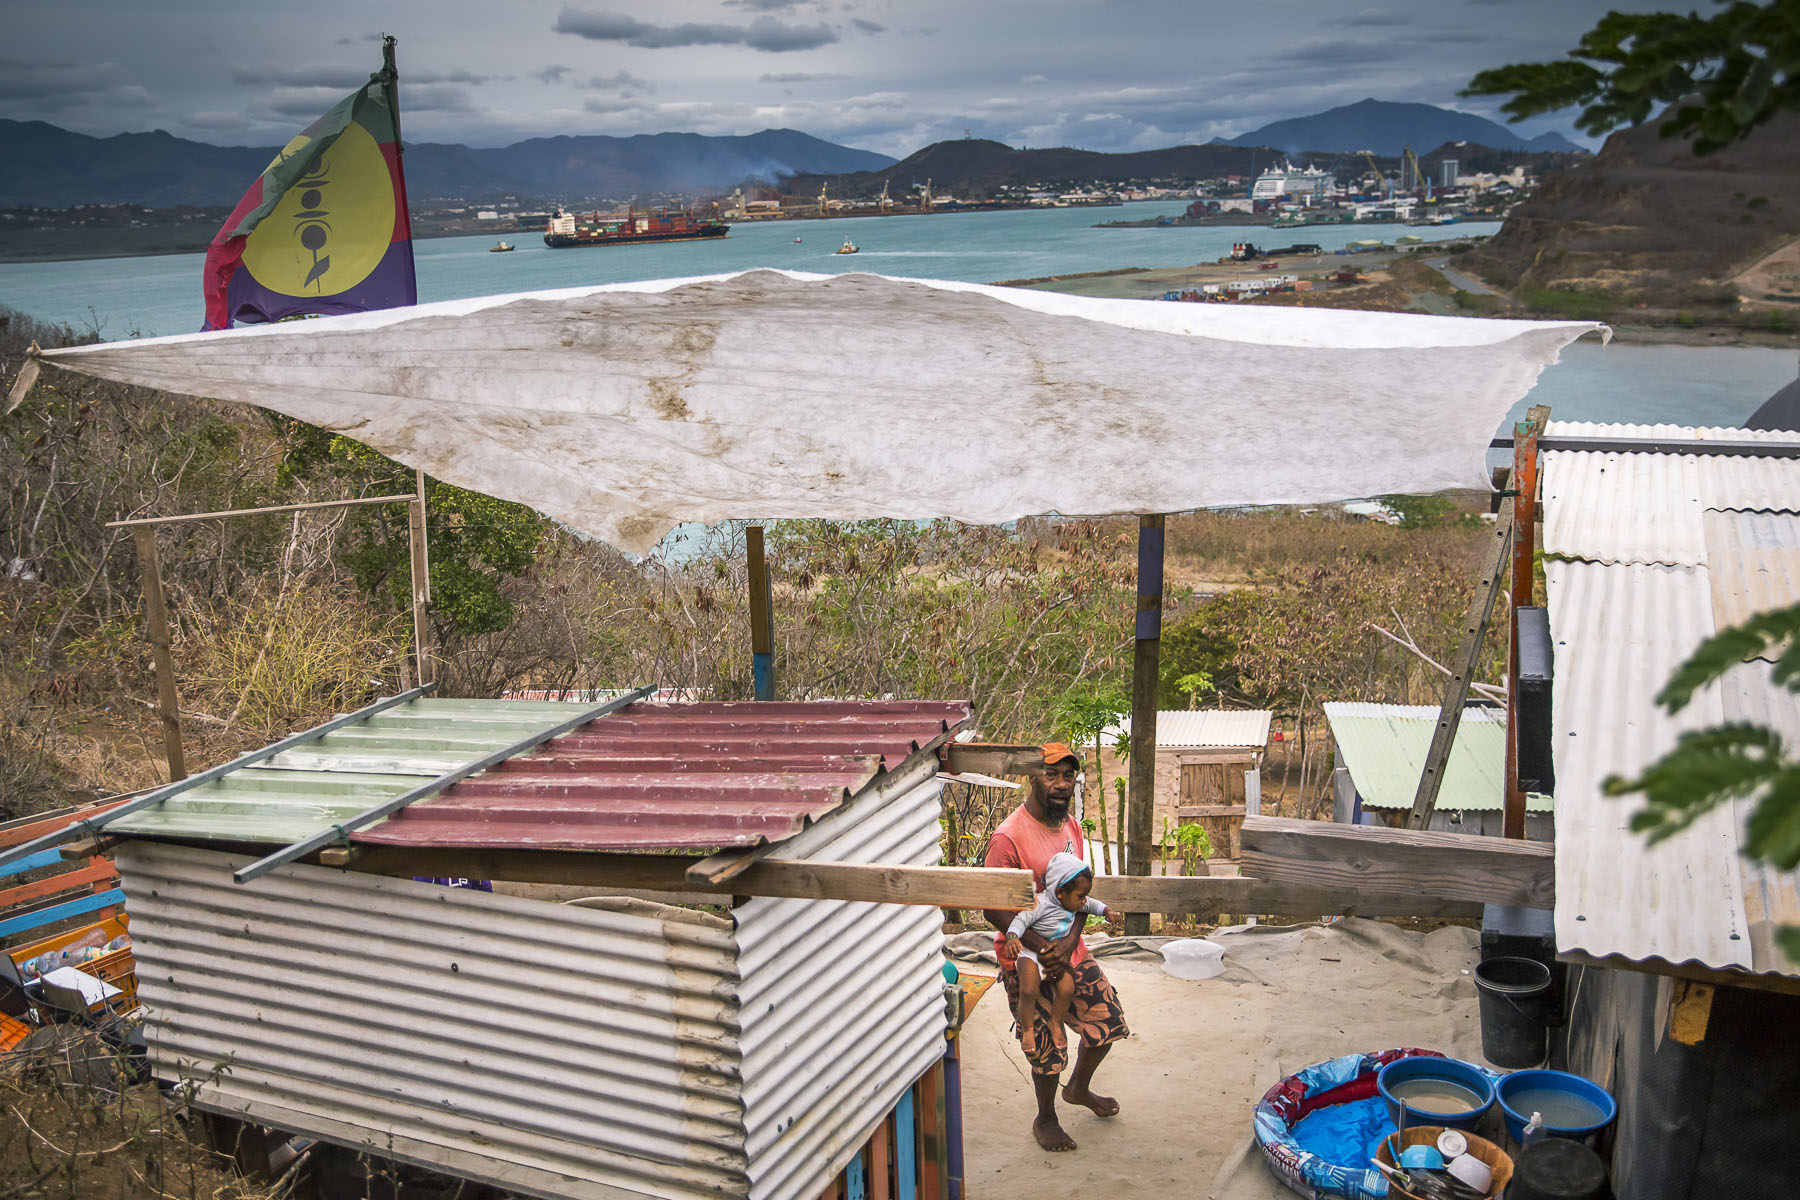 Due to lack of housing, the New Caledonians, mostly Kanaks, looking for work in the city built huts with recycled materials on vacant land on the peninsula of Nouville behind the University of New Caledonia and facing the downtown Noumea. The squats of Noumea would welcome today more than 8000 people in an agglomeration of approximately 160 000 inhabitants. November 2017